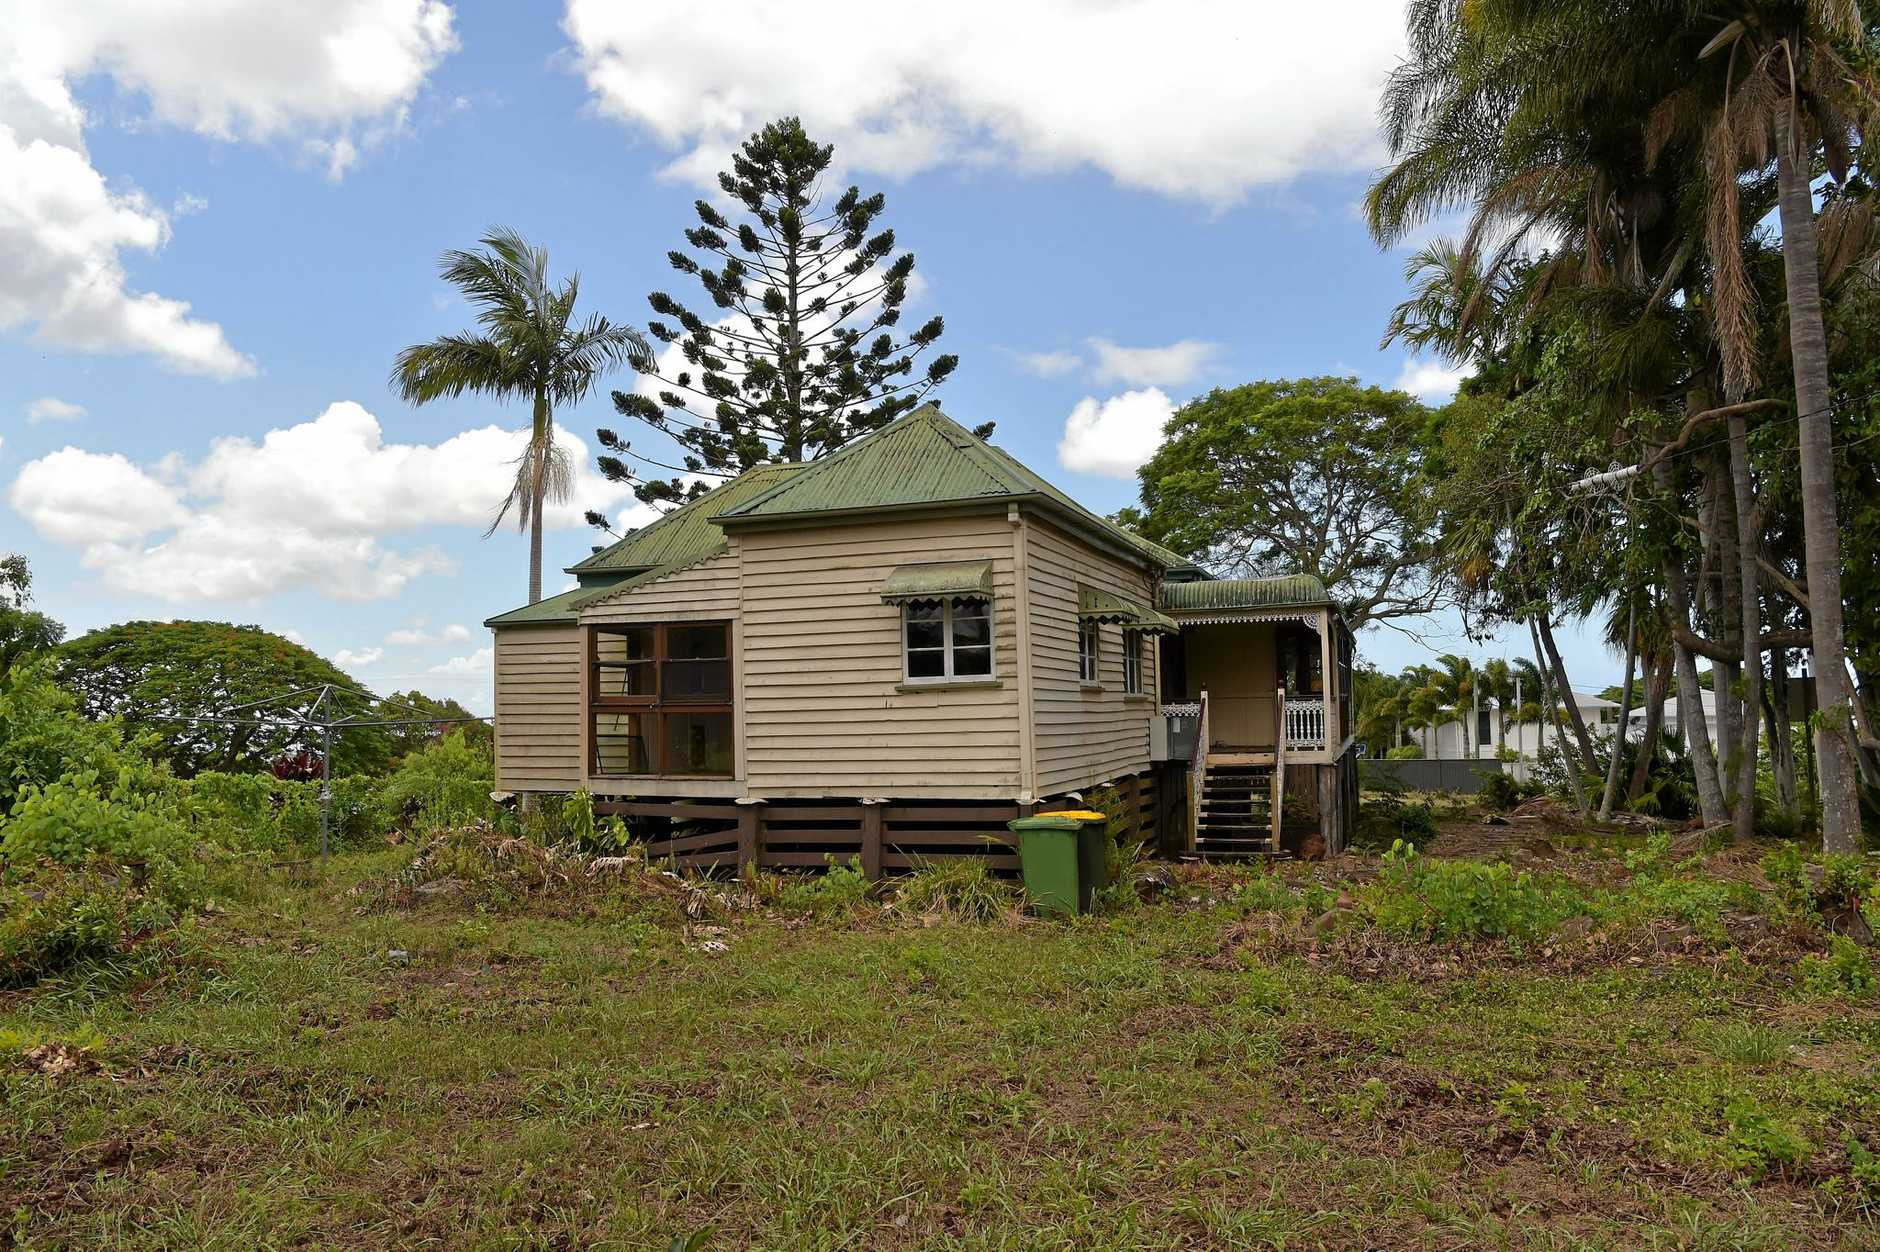 Decendents of William Guy want the old Buderim house heritage listed.